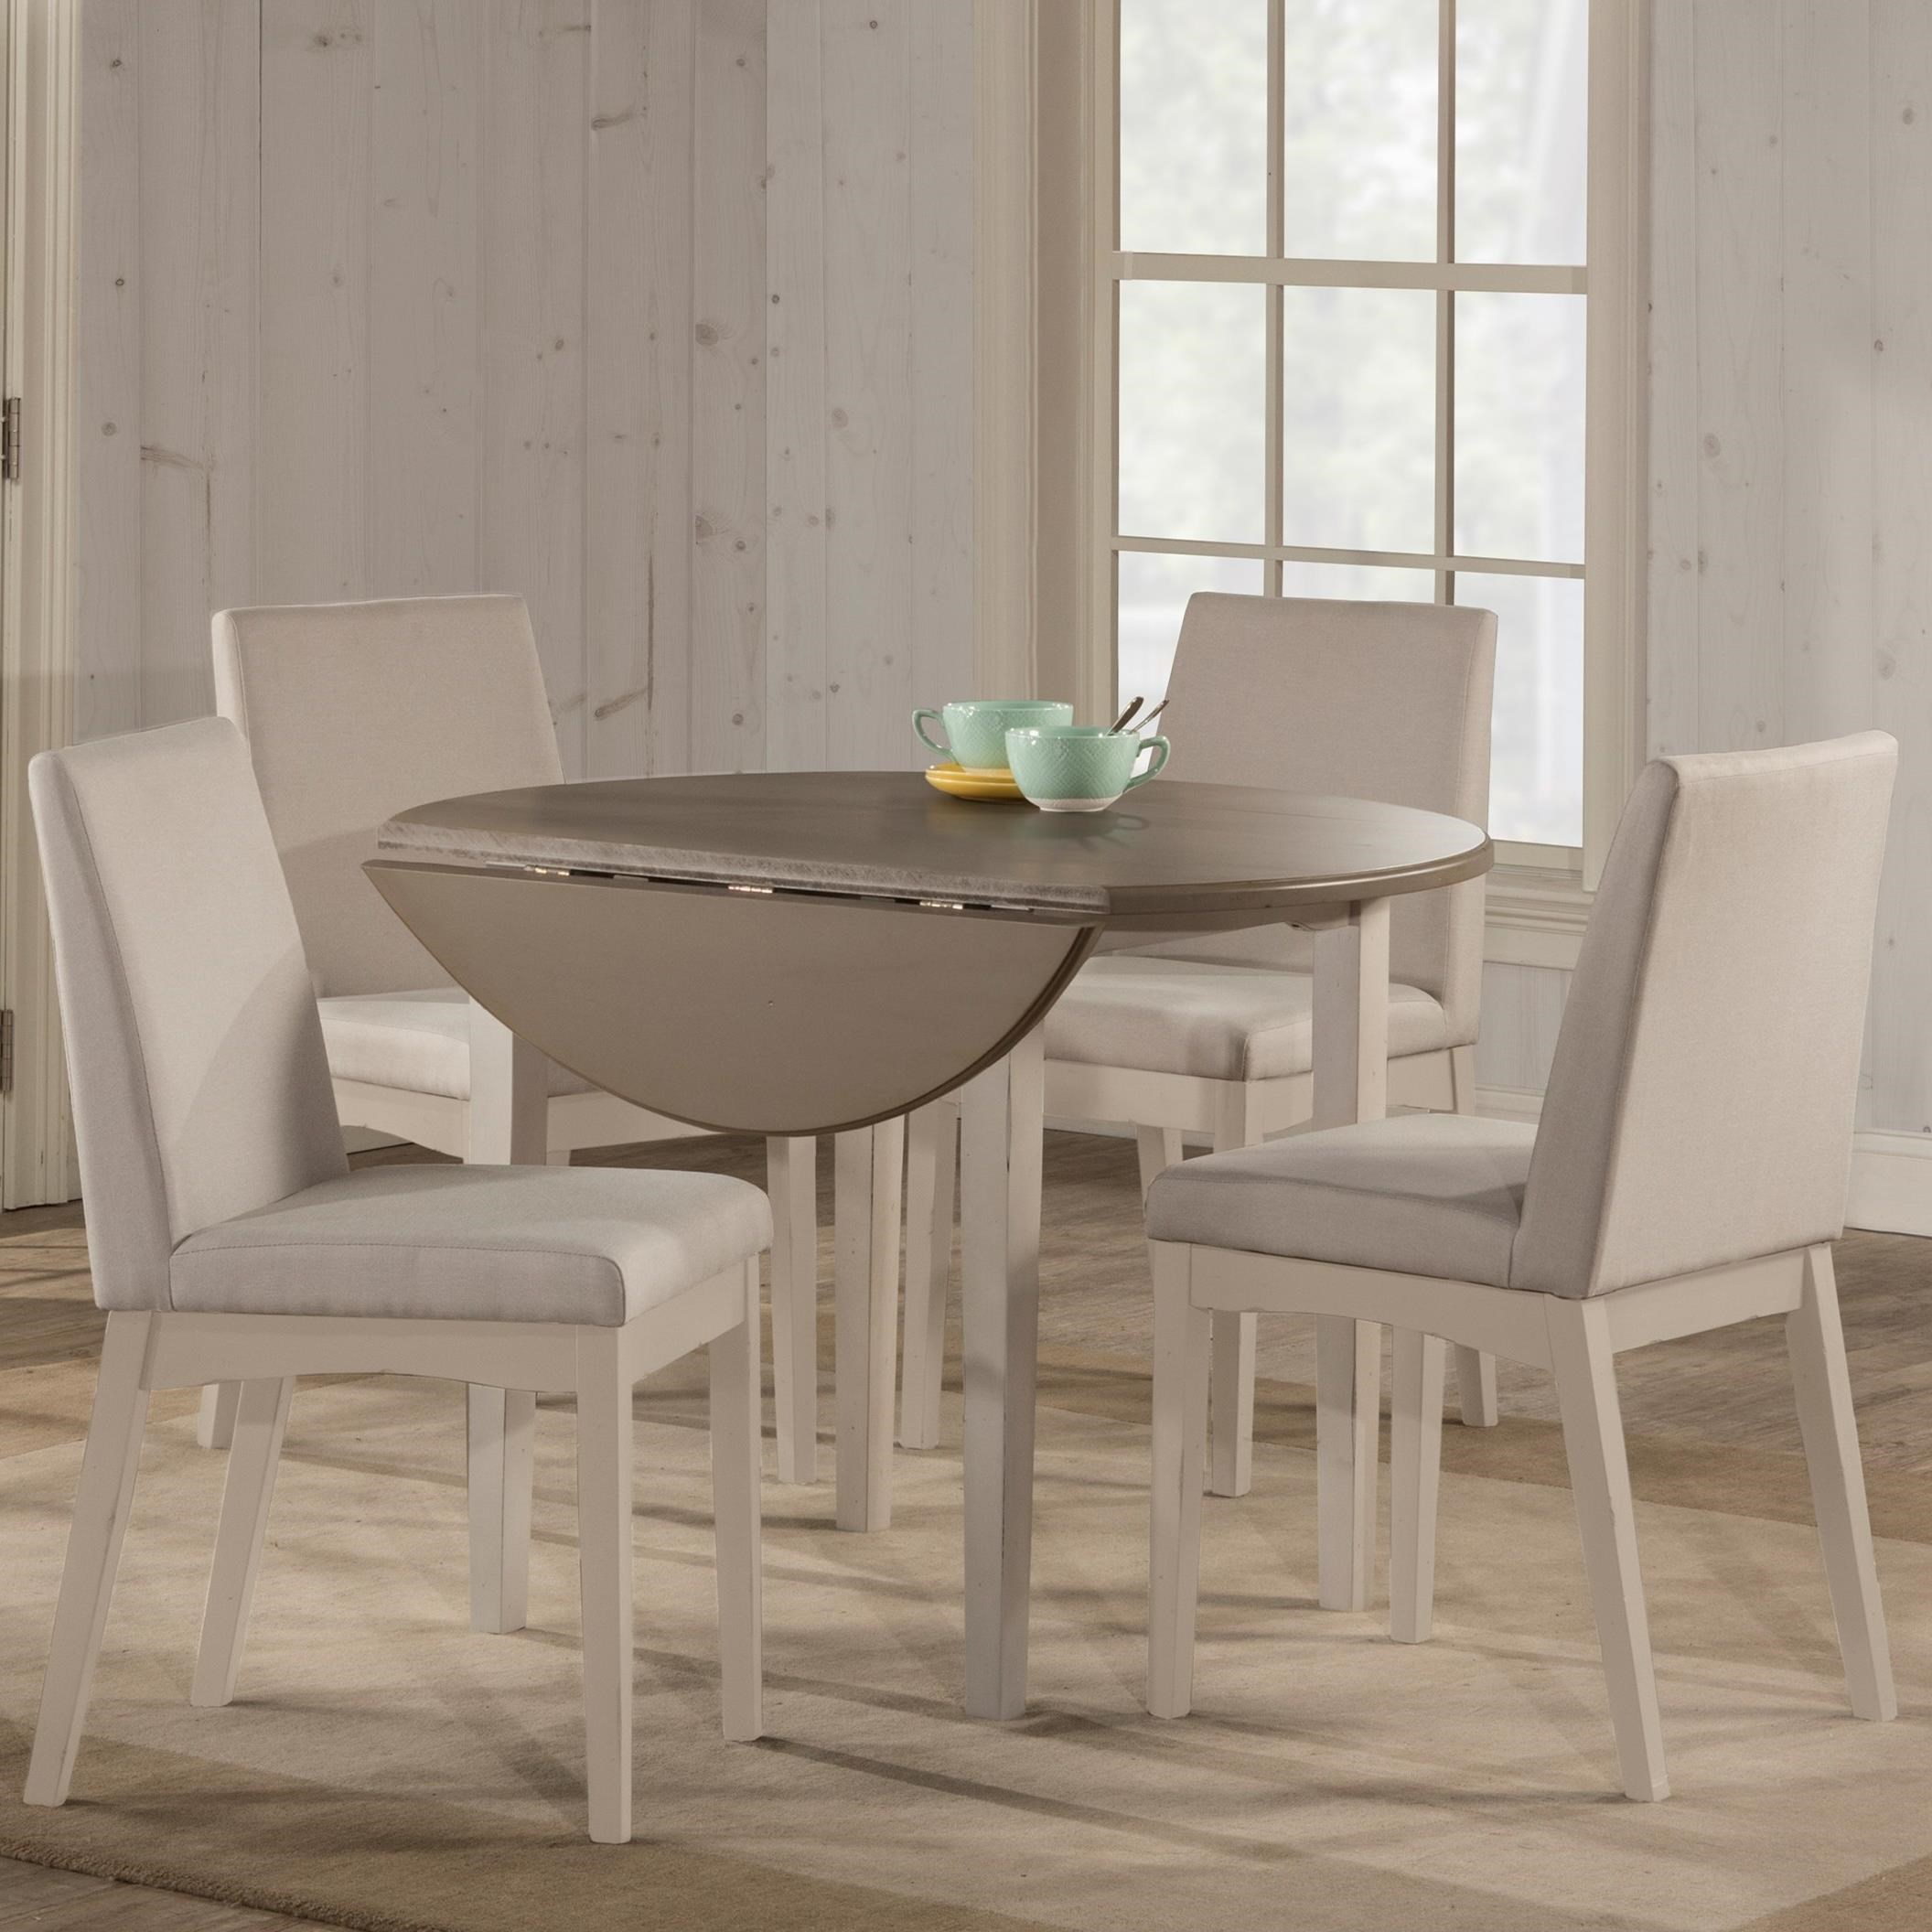 Hillsdale Clarion 5 Piece Dining Set With Drop Leaf Table And Parson With Newest Smyrna 3 Piece Dining Sets (View 15 of 20)